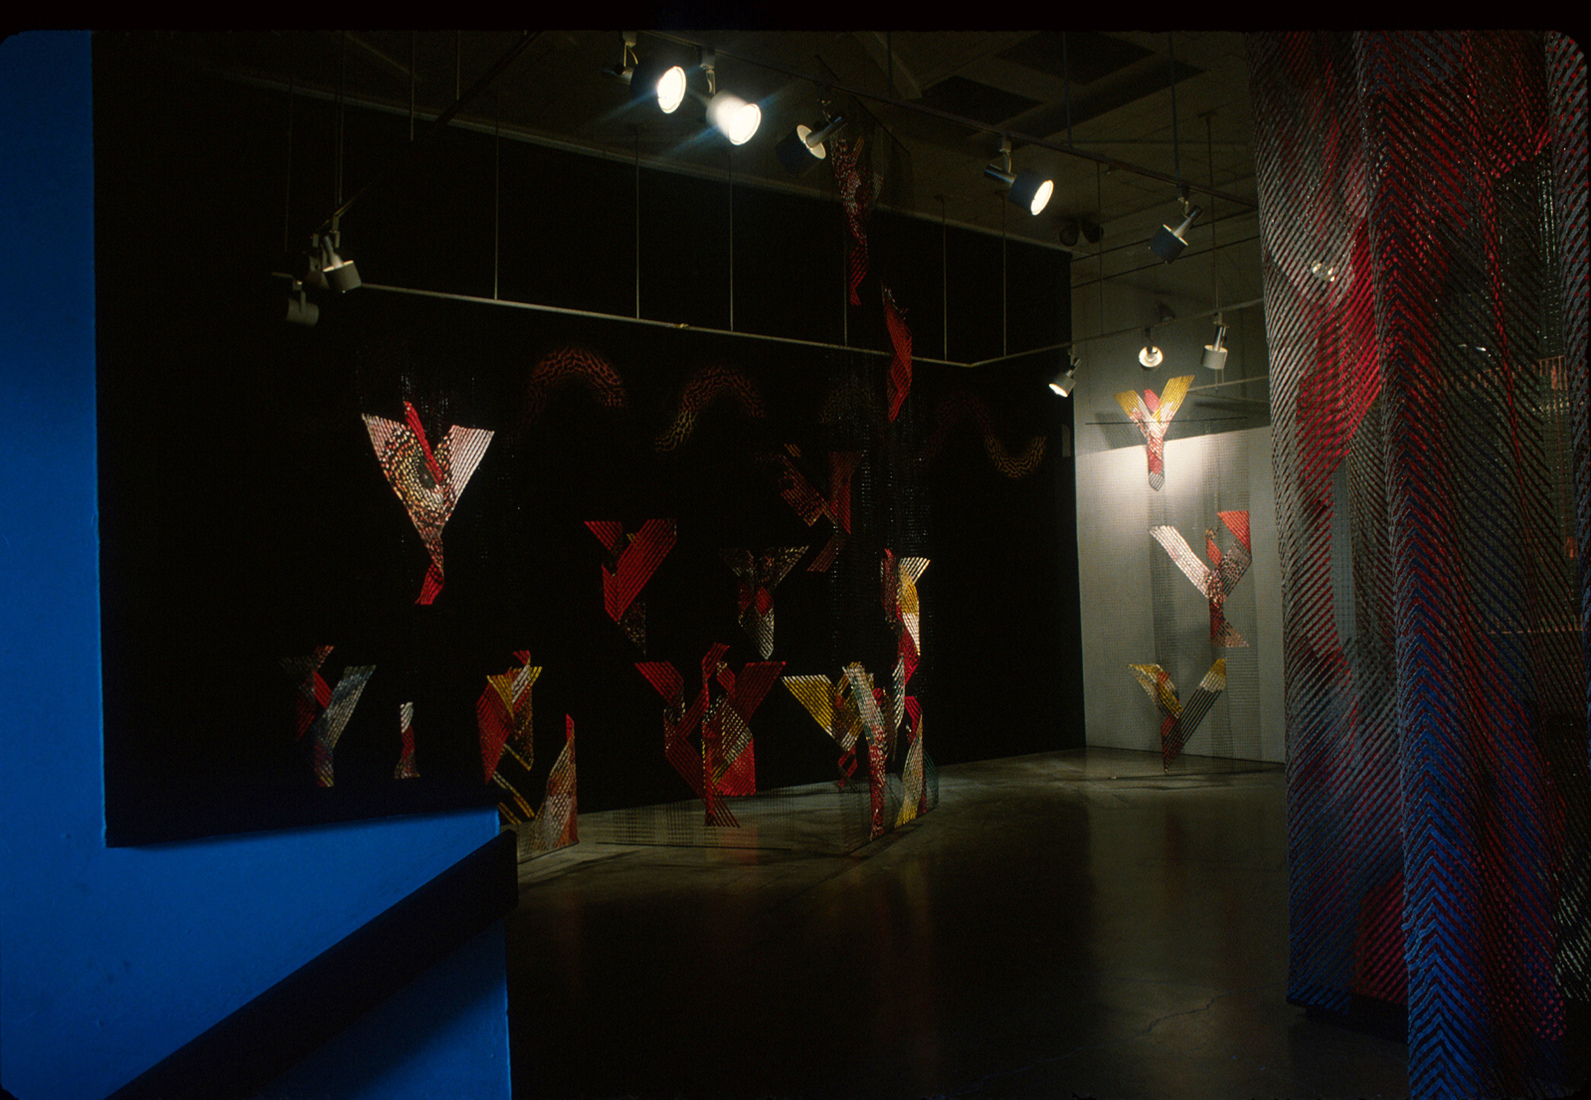 GERHARDT KNODEL Installation Work 1989-1997 Walls, a gallery installation, 1991, cotton, silk, propylene net, wood and metal support, Seattle Pacific University, Washington